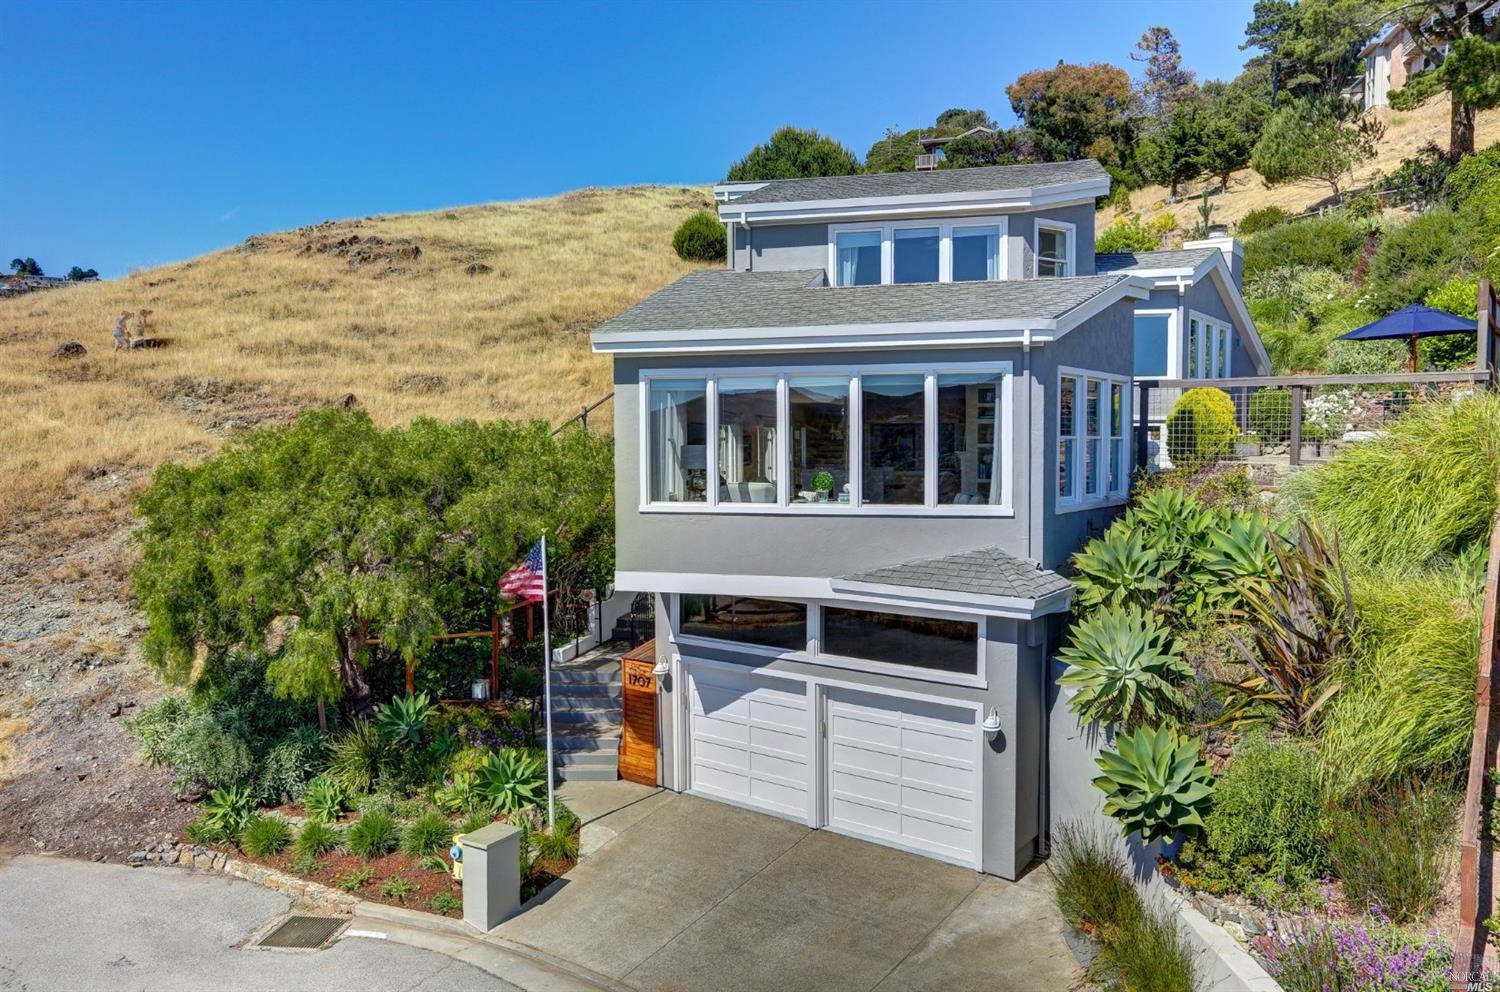 1707 Vistazo West street Tiburon, CA 94920 - MLS #: 21714258